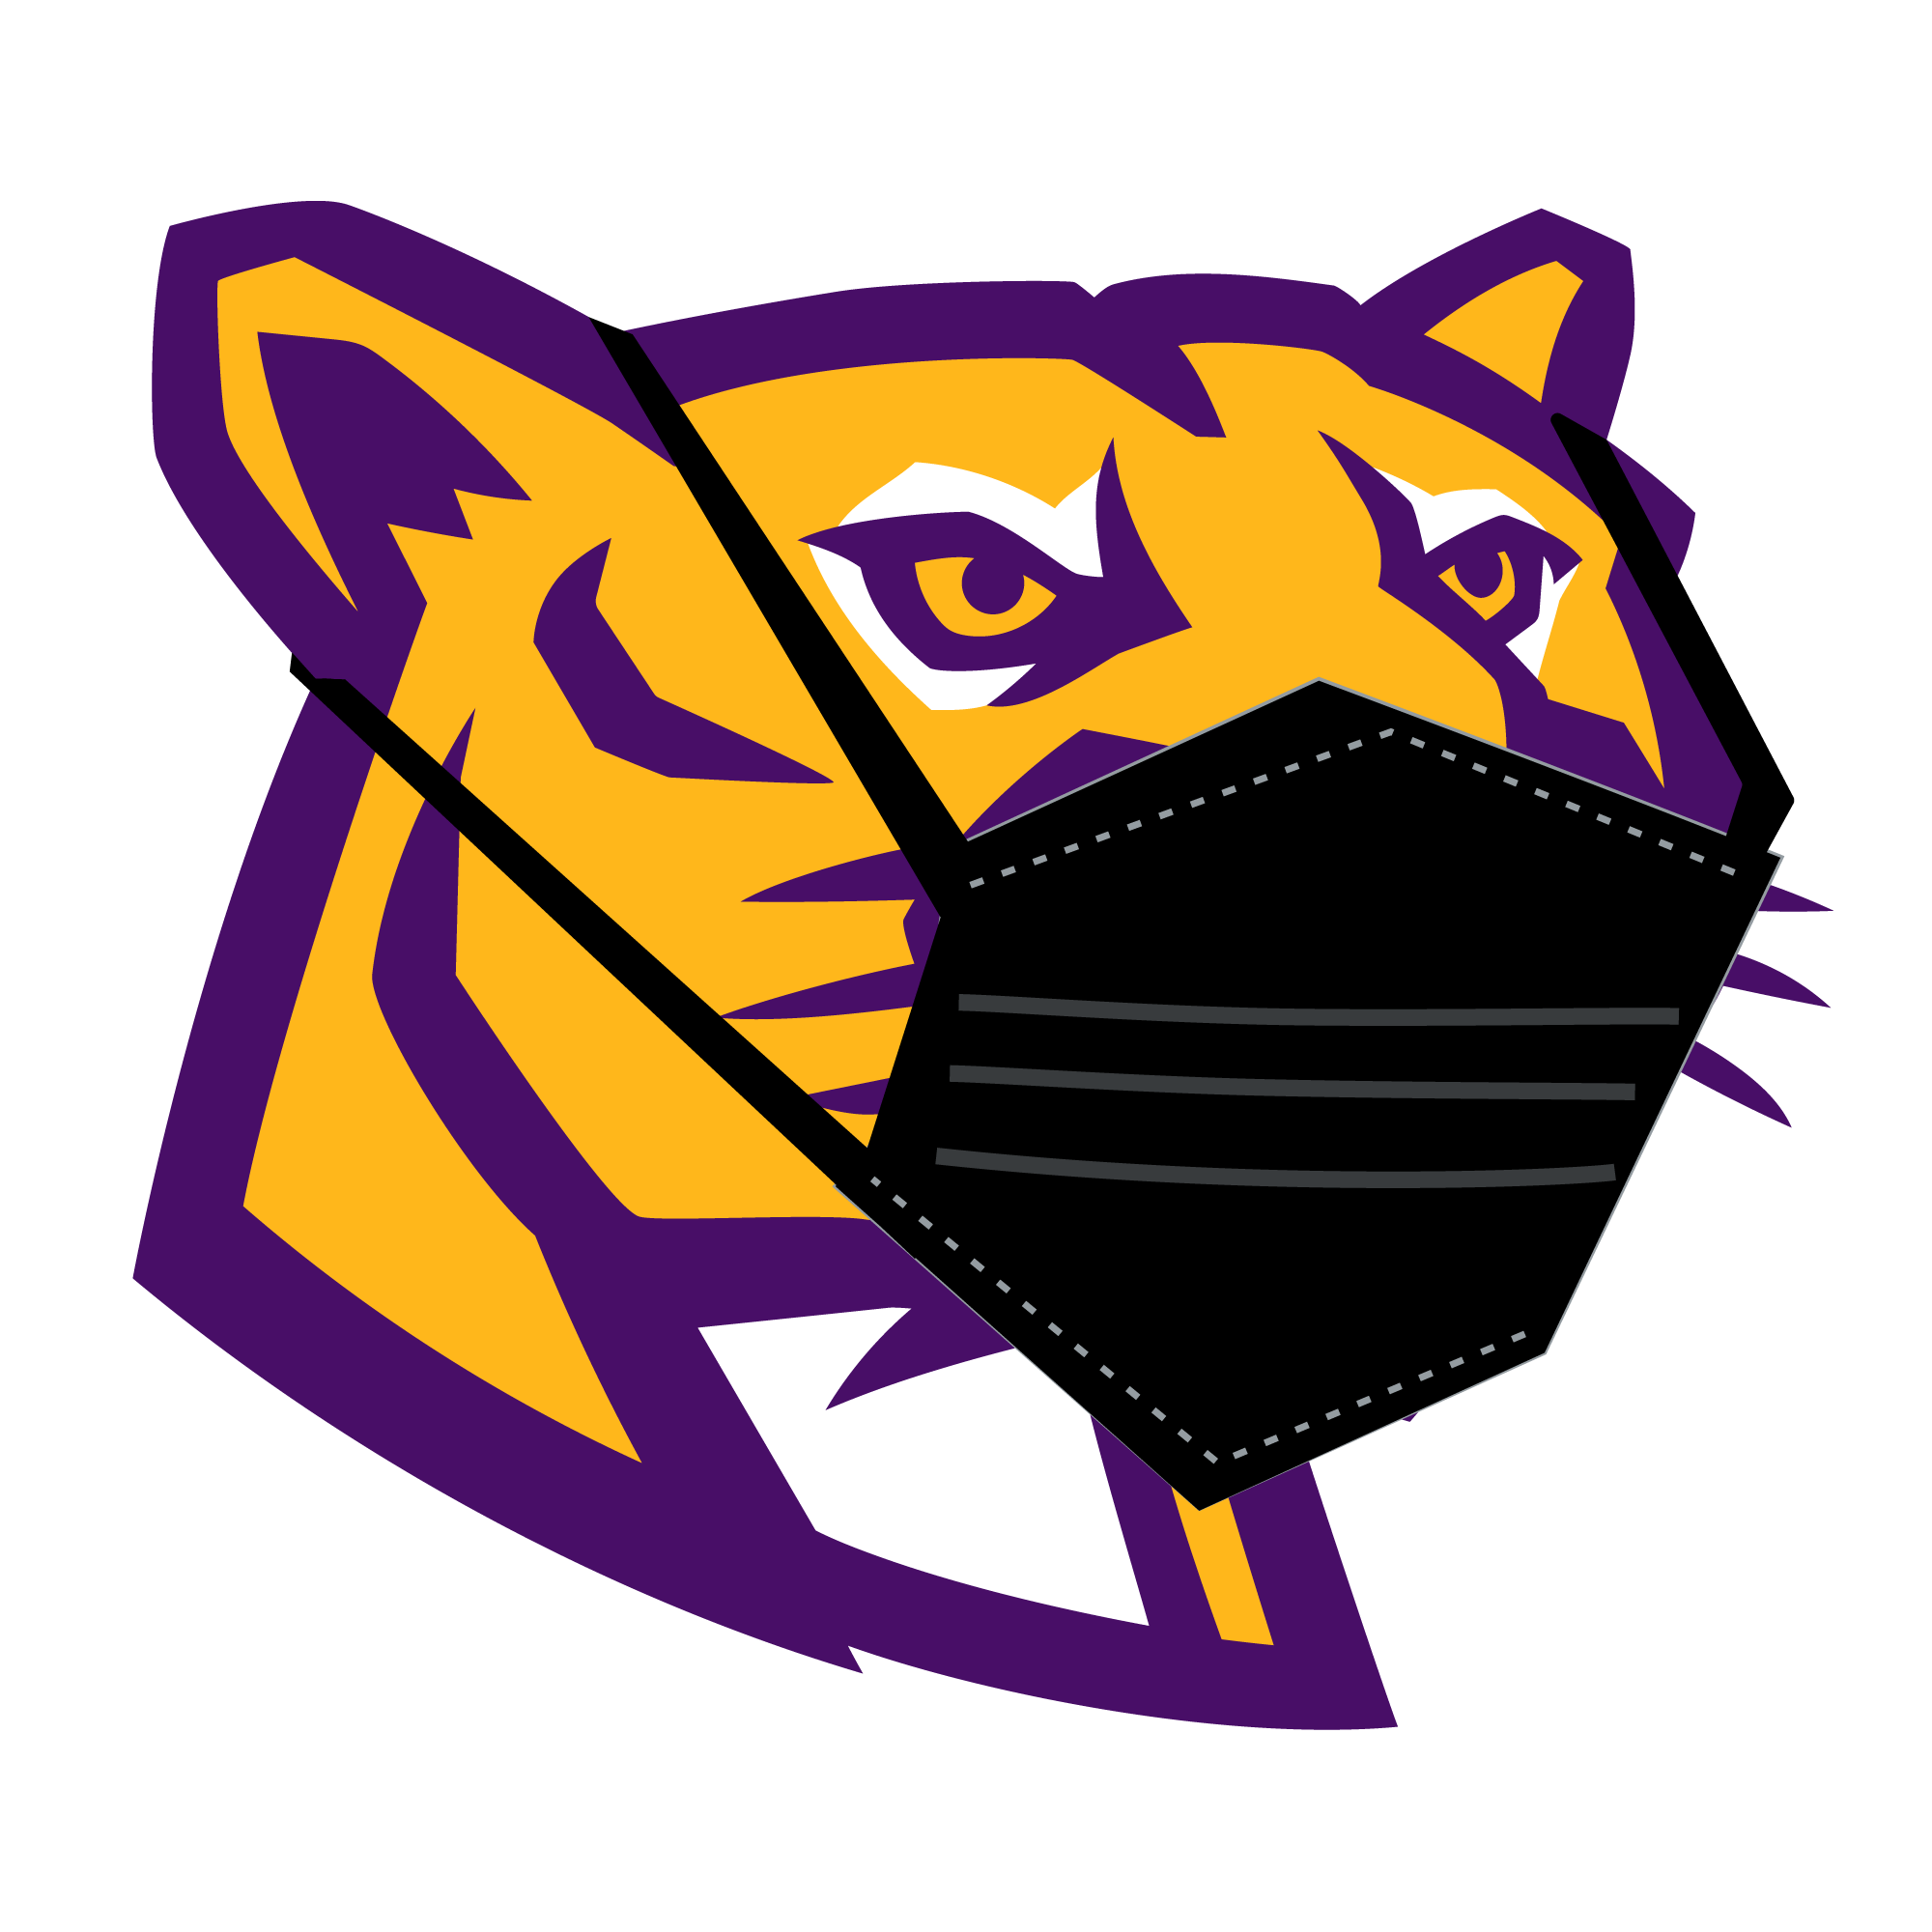 Affton Cougar with a face mask